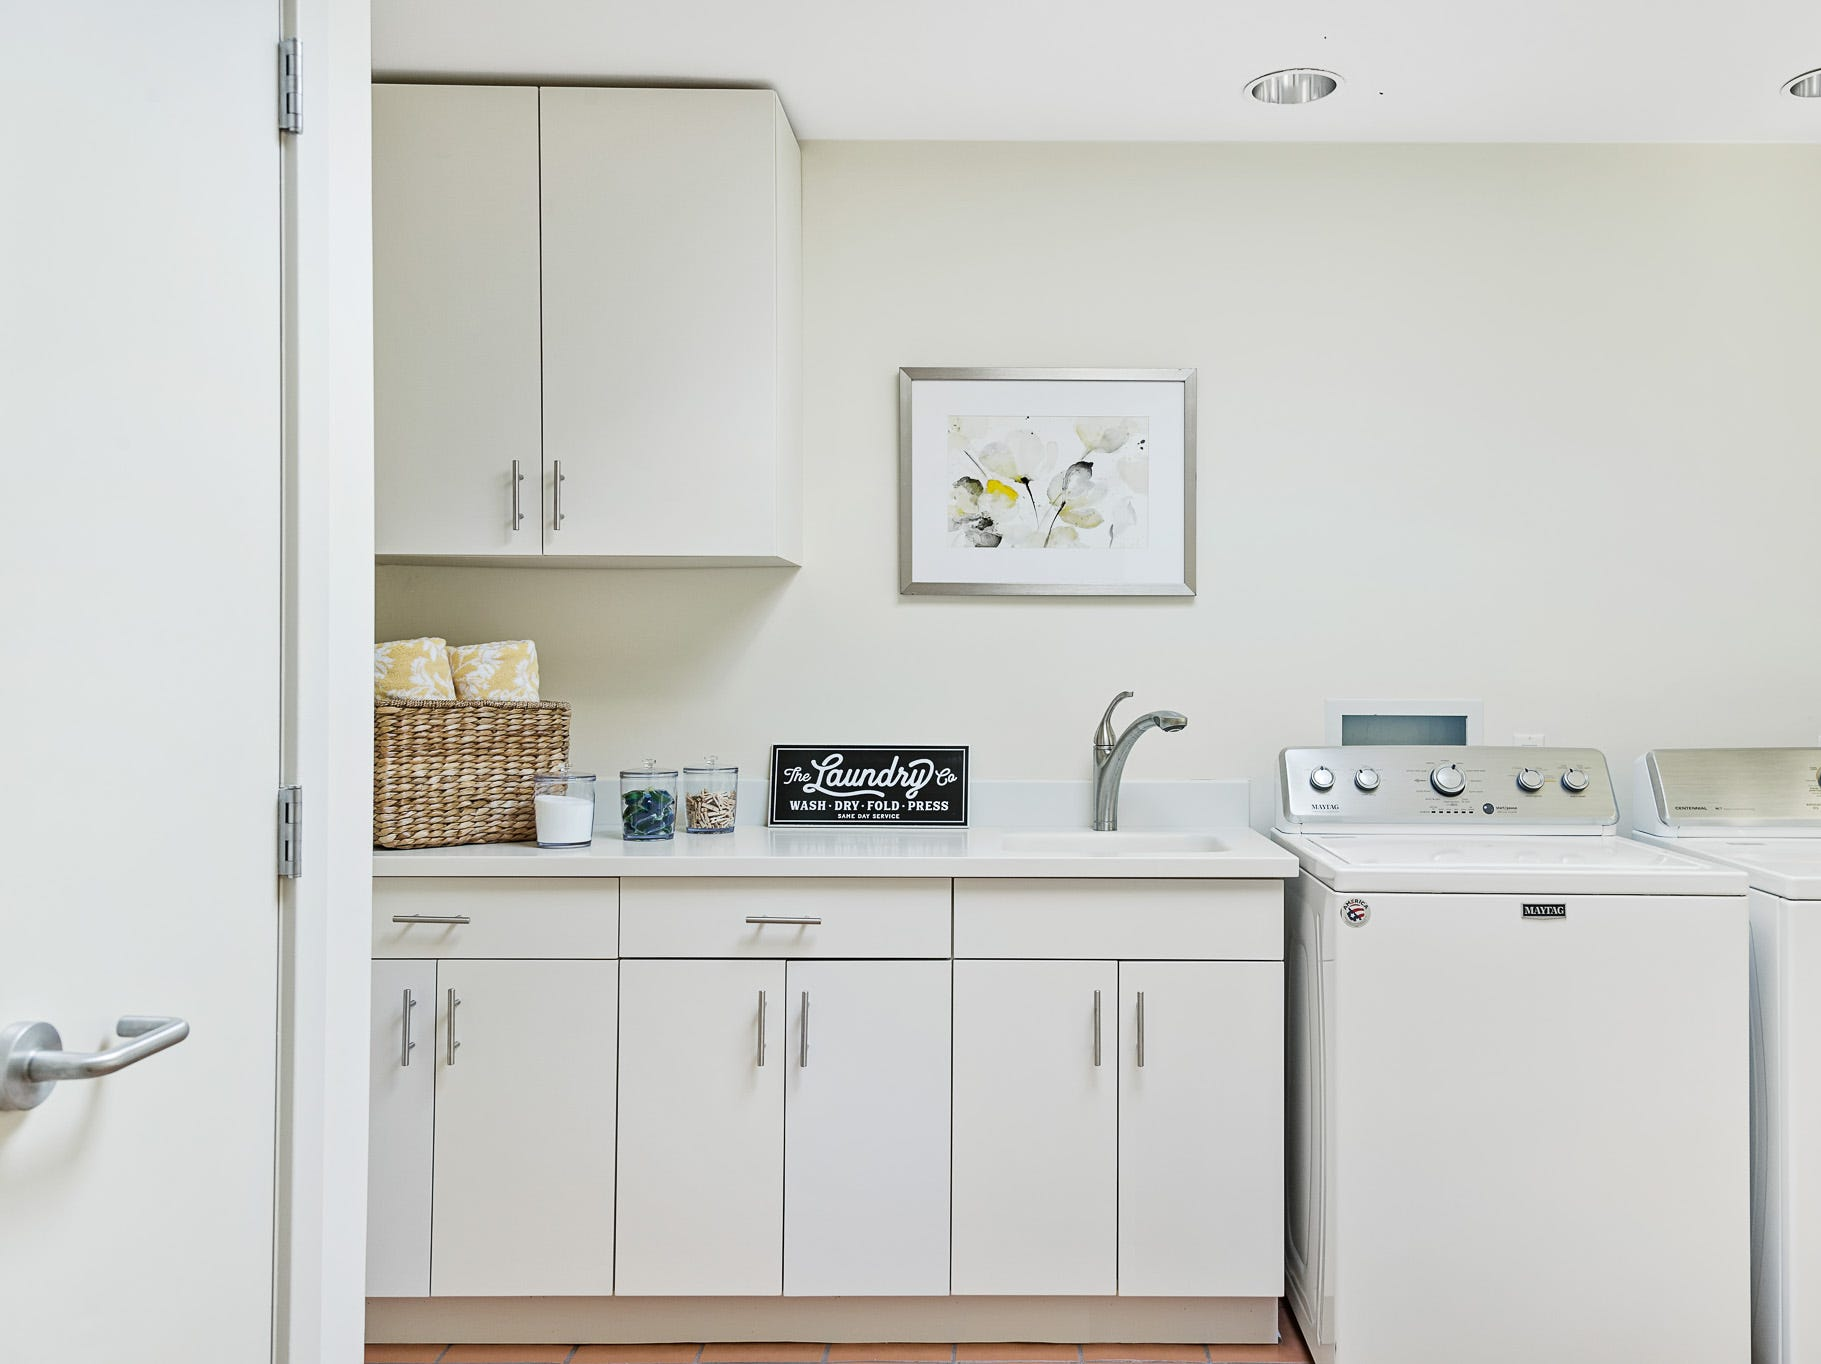 The house at 3611 Centerville Road in Greenville offers a spacious laundry room.